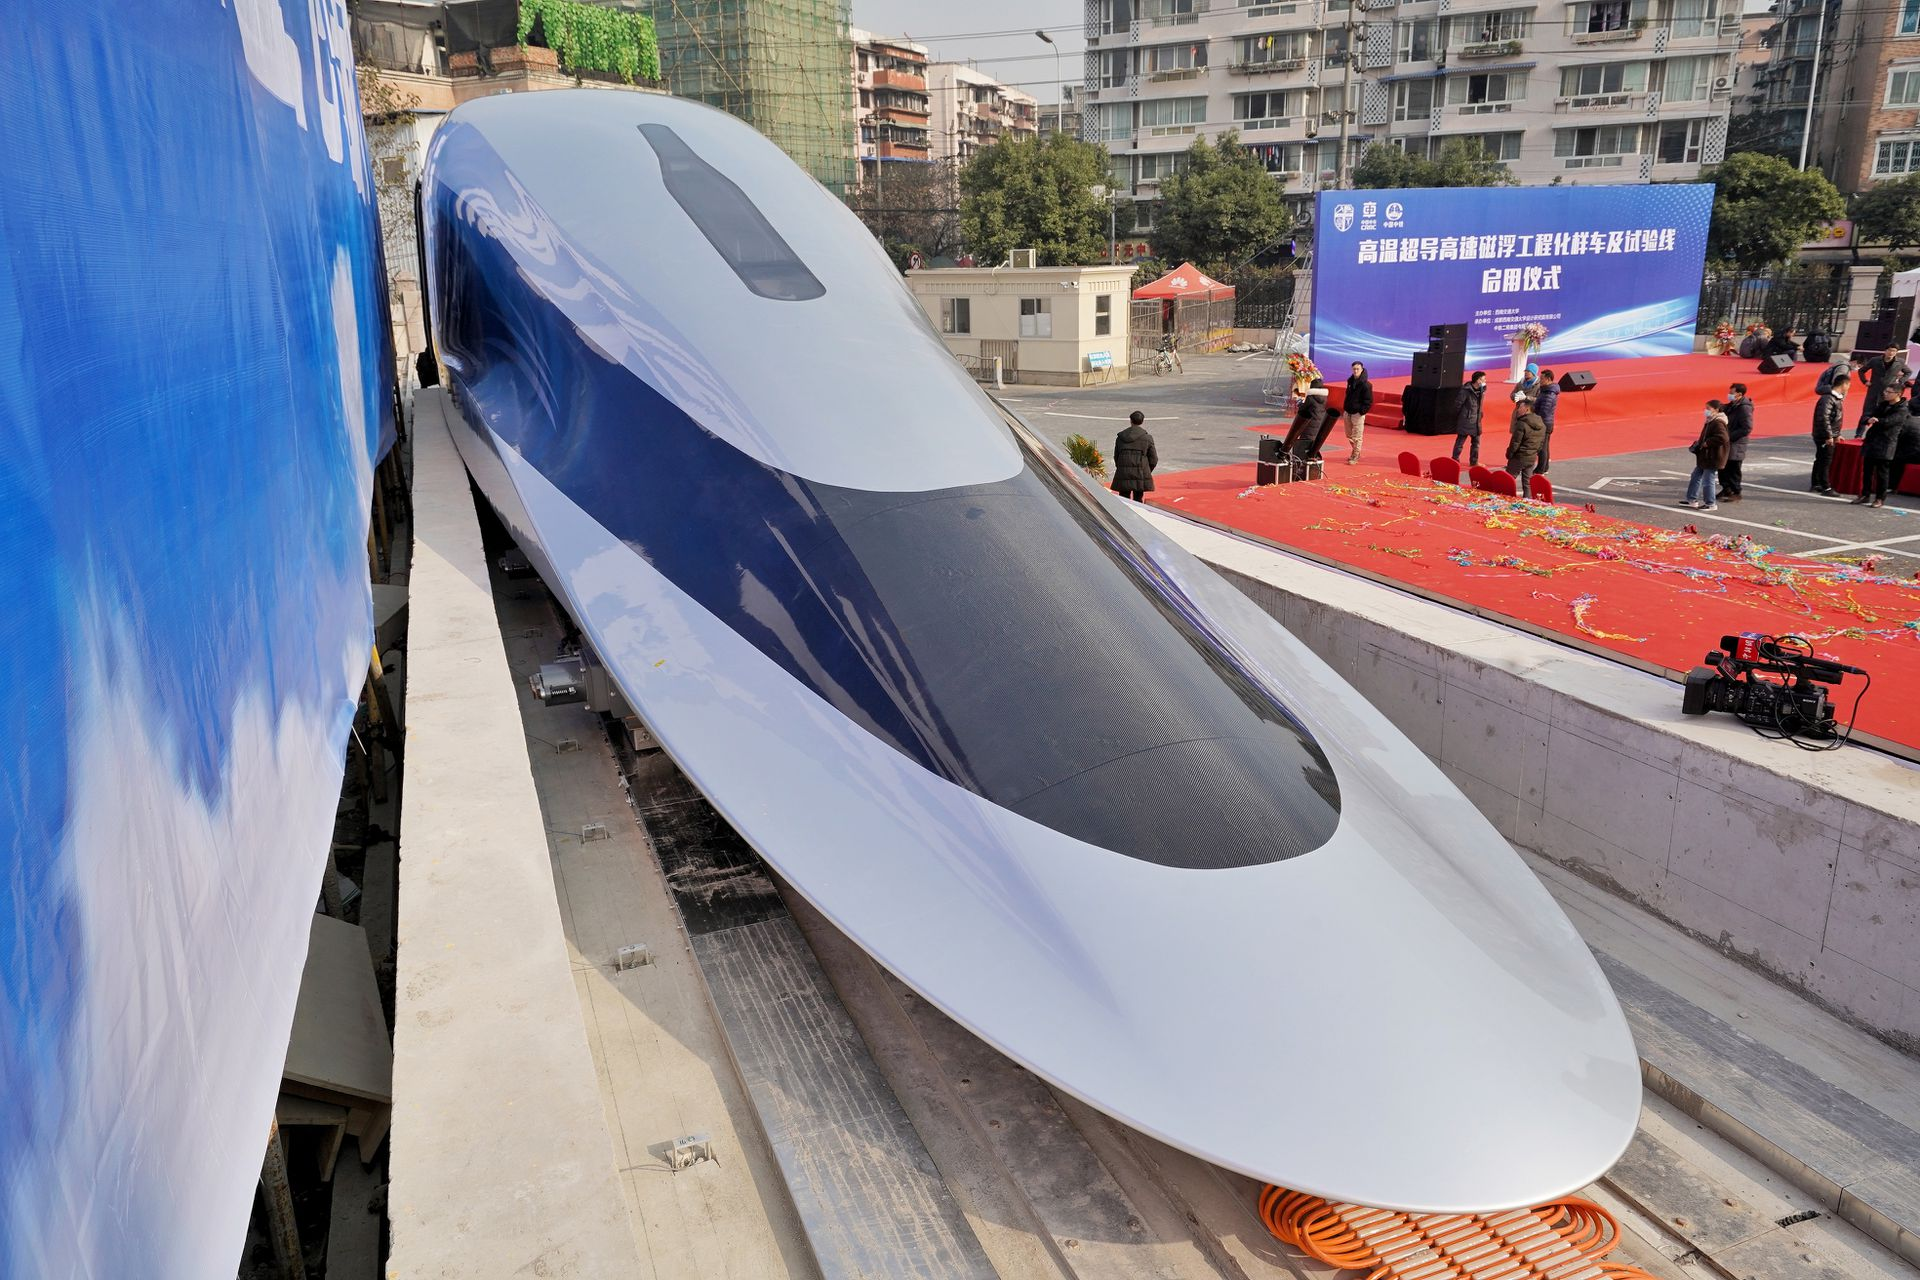 Maglev lines are expected to cut travel time between Shanghai – Guangzhou to less than 3 hours